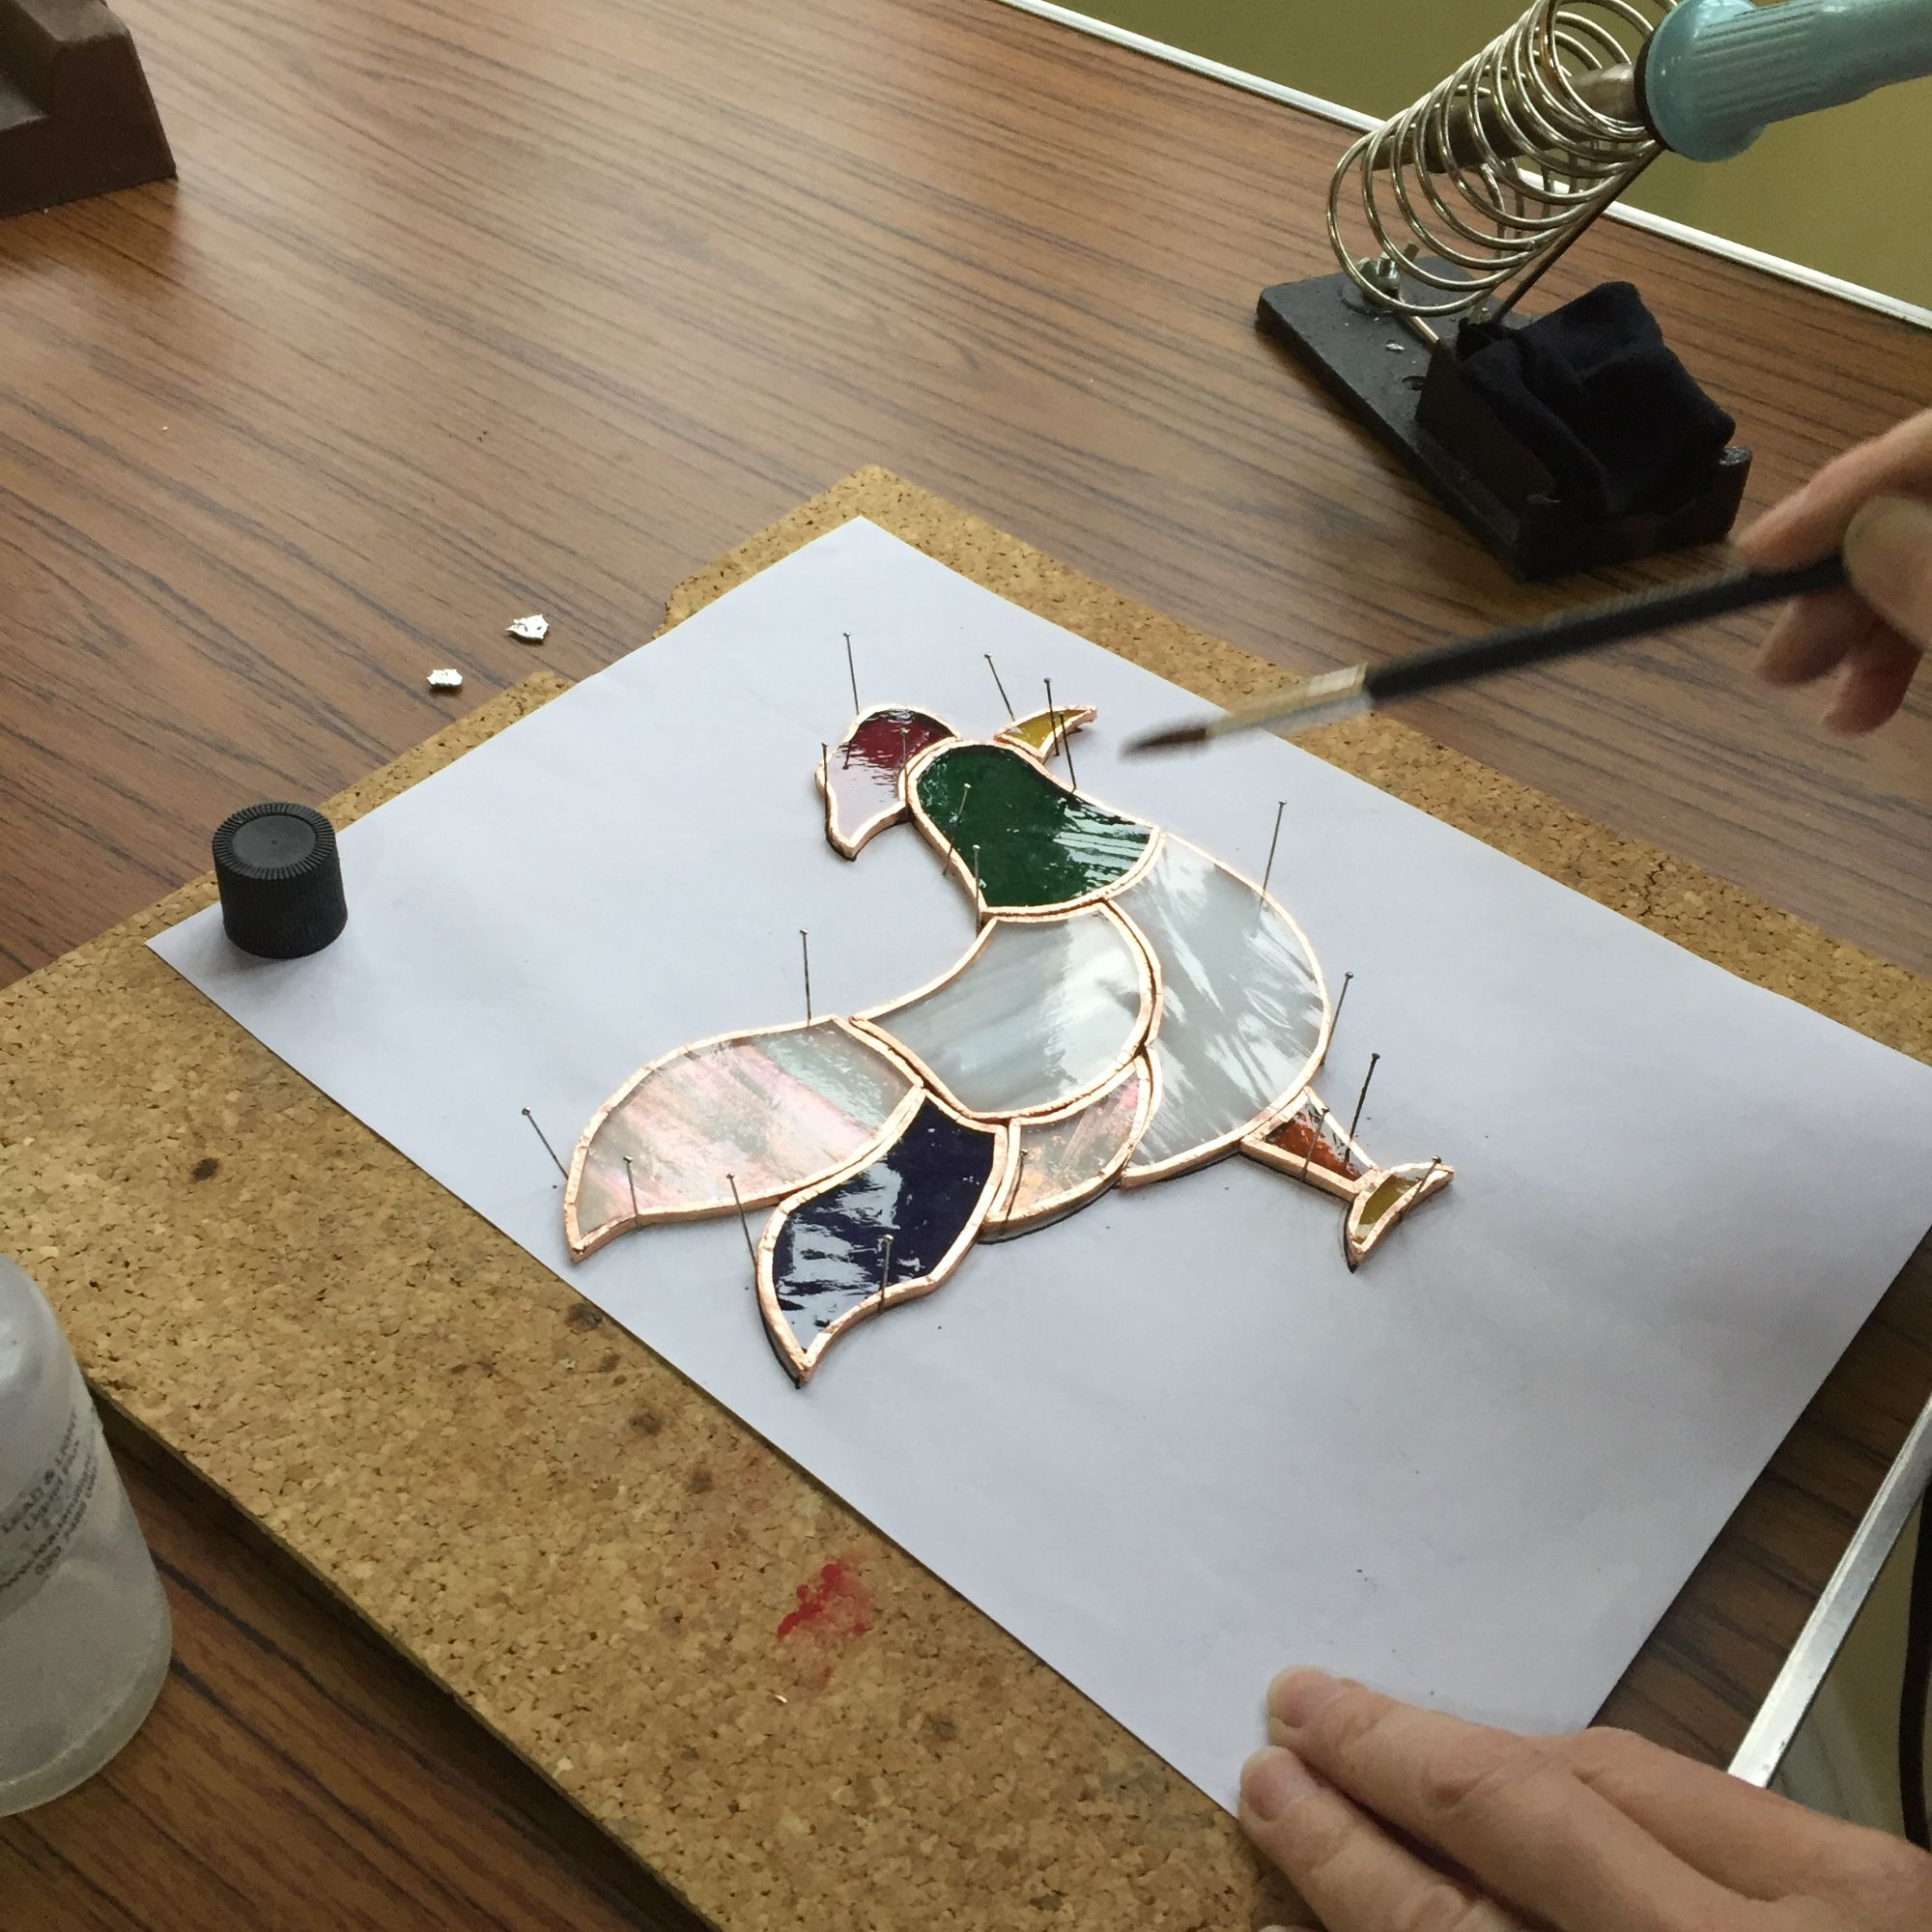 Stained Glass Workshop - Soldering